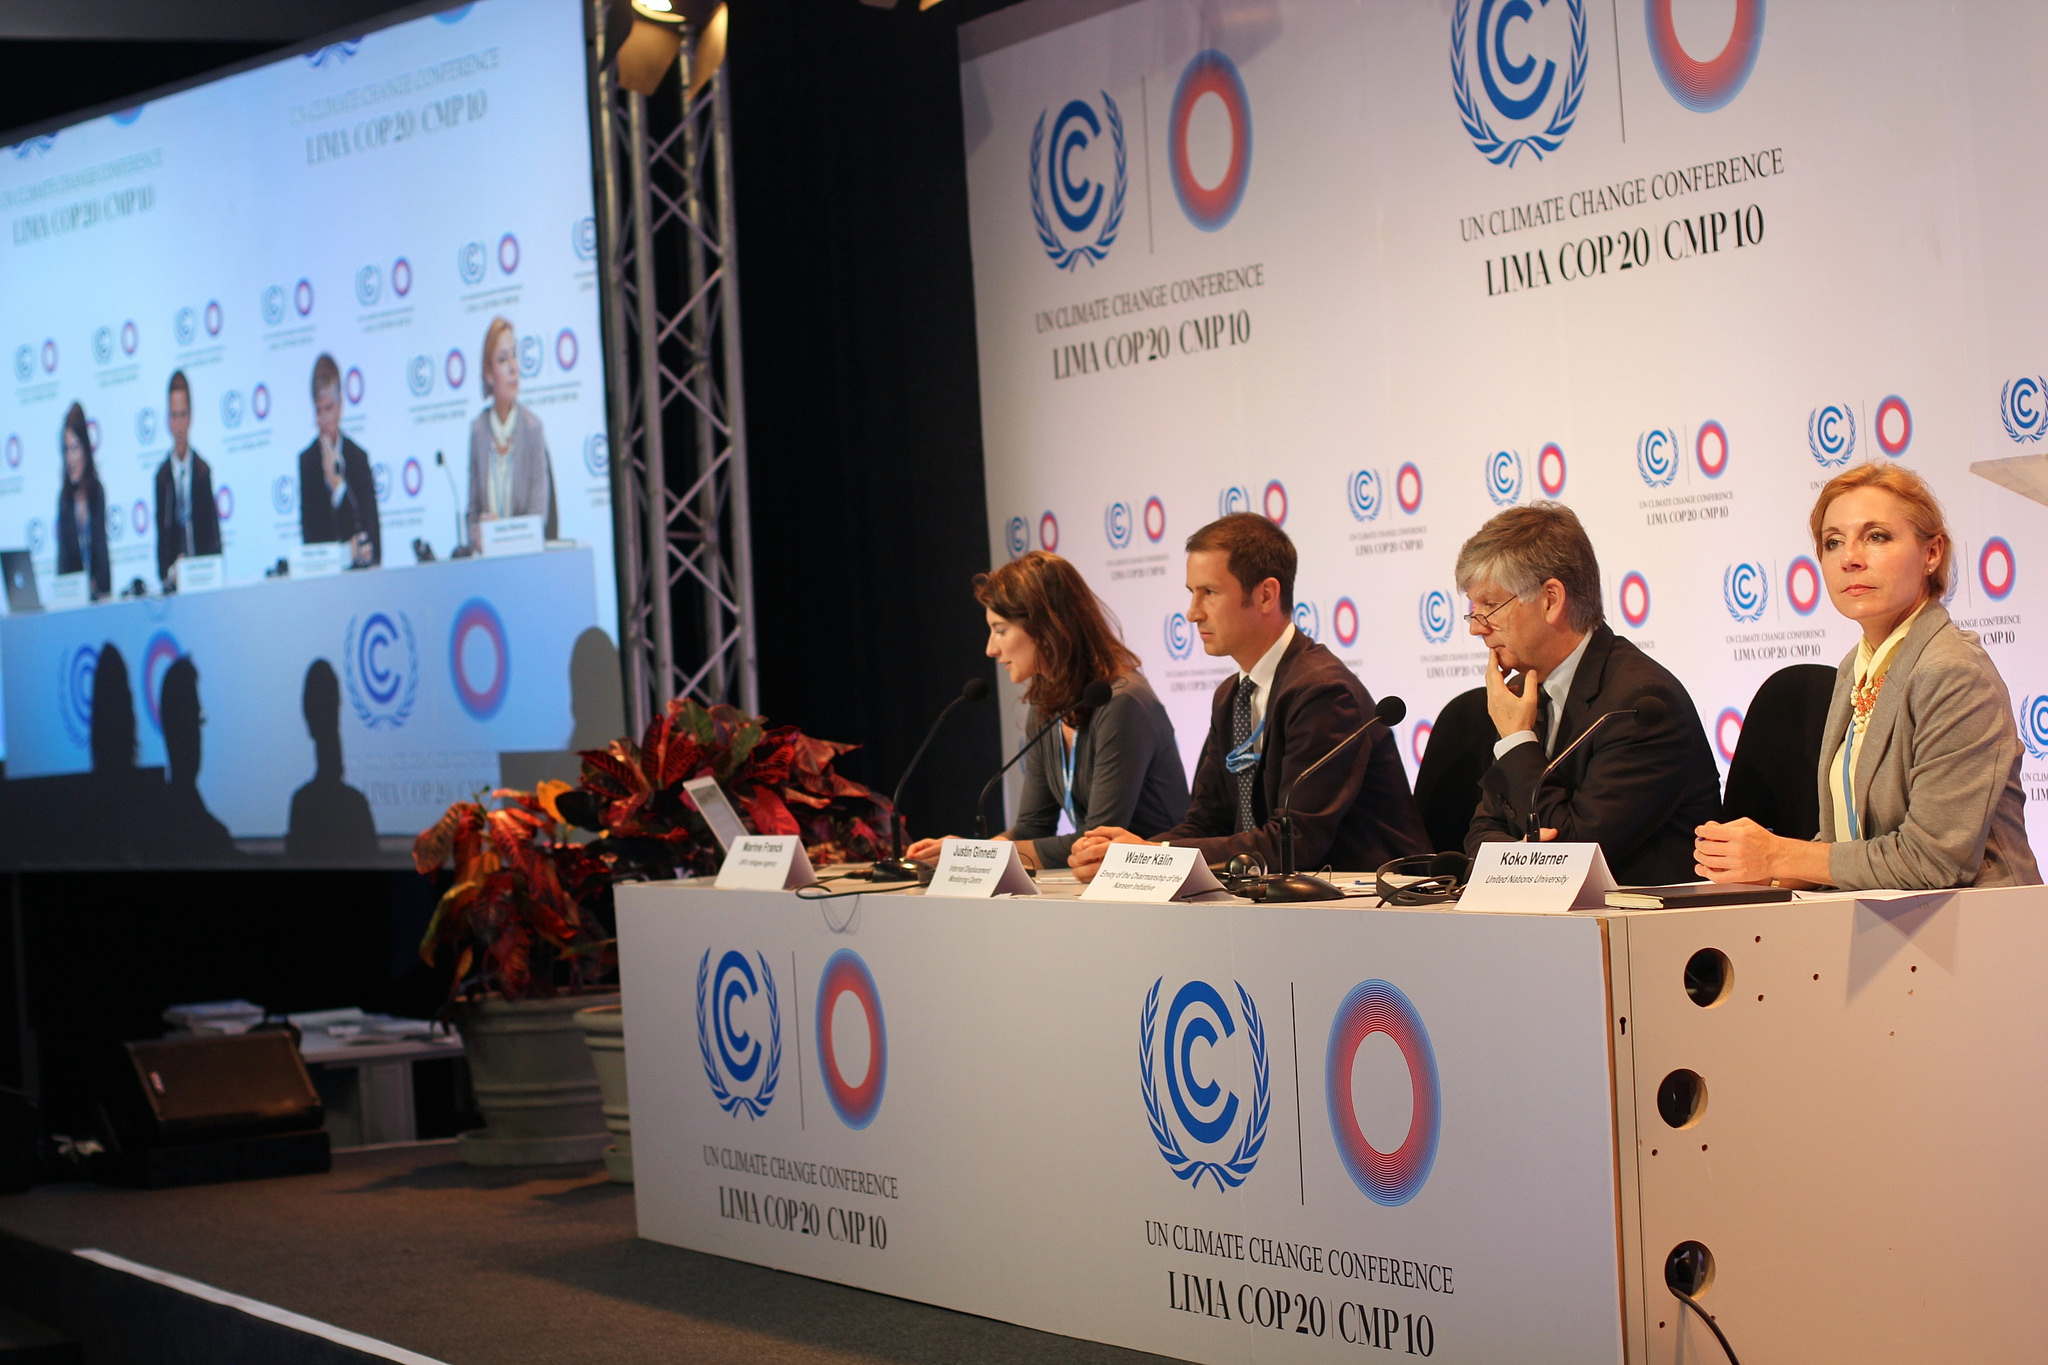 Lima Climate Change Conference: Norway and Switzerland Call for Commitments to Adaptation Measures